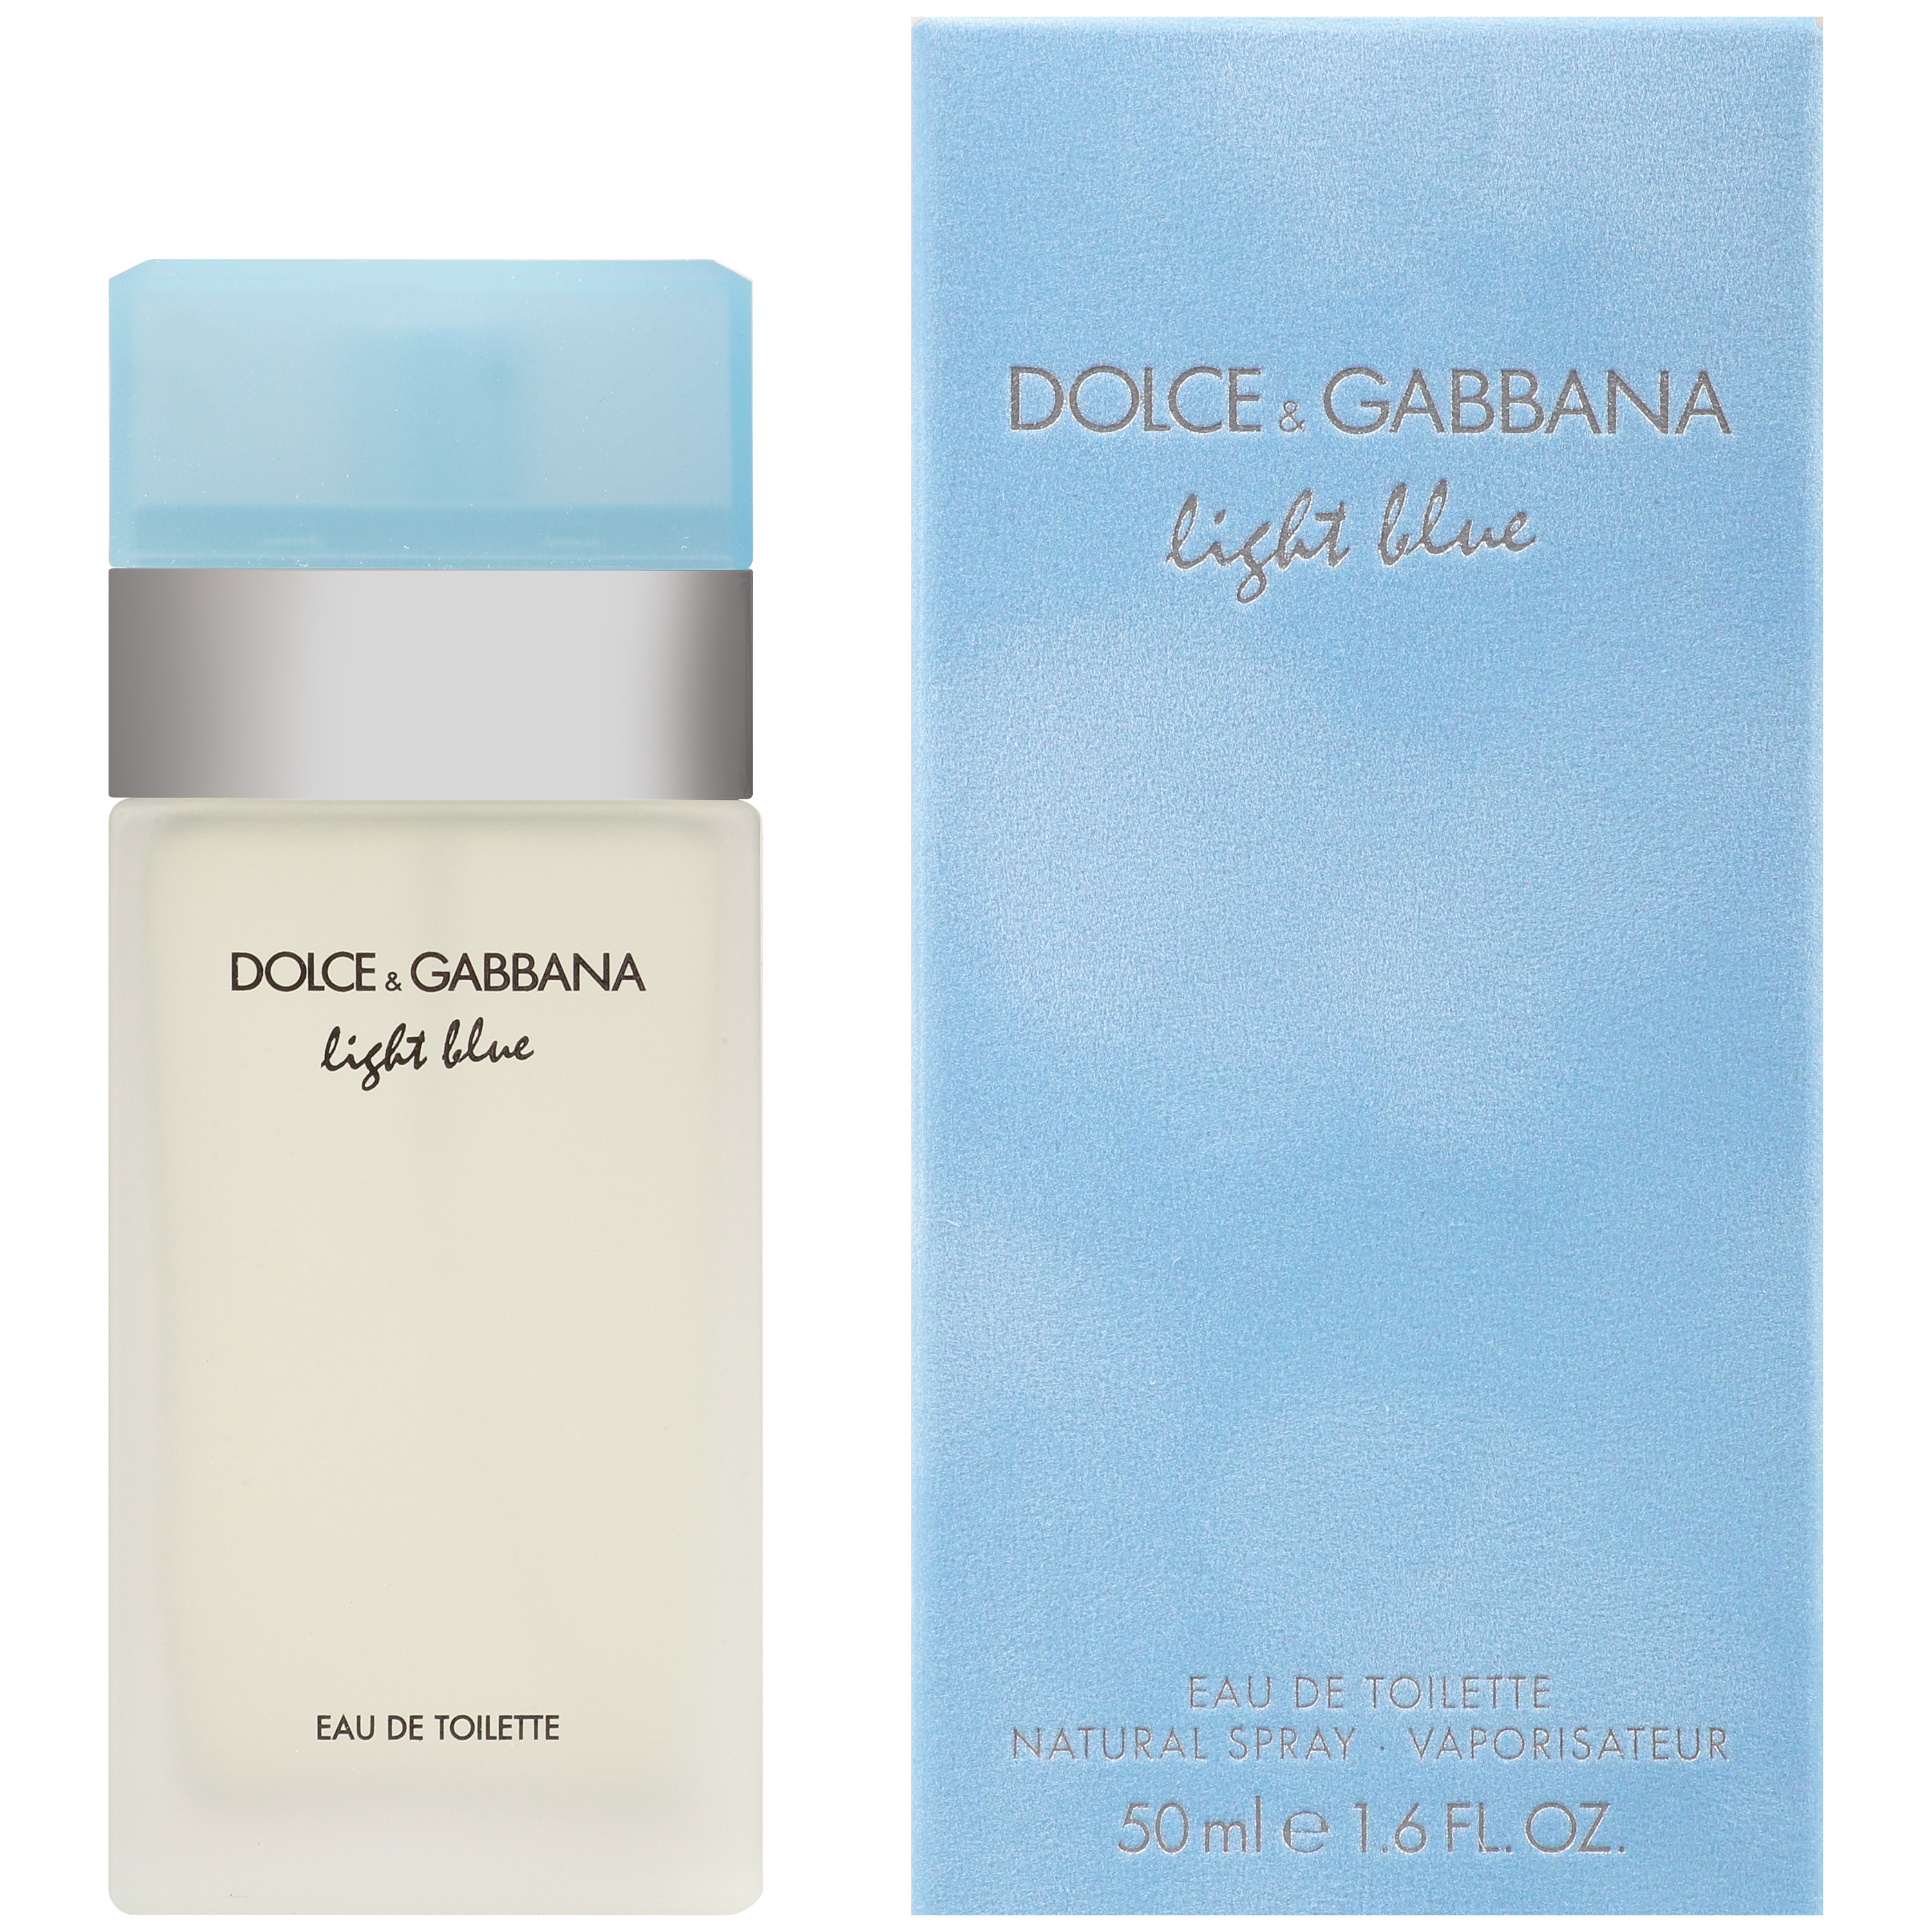 d7d8bd5d82122 ... Mario Testino to create the sequel of the Light Blue story. Bianca  Balti s character portrays the Italian femme fatale. She represents the  Dolce Gabbana ...